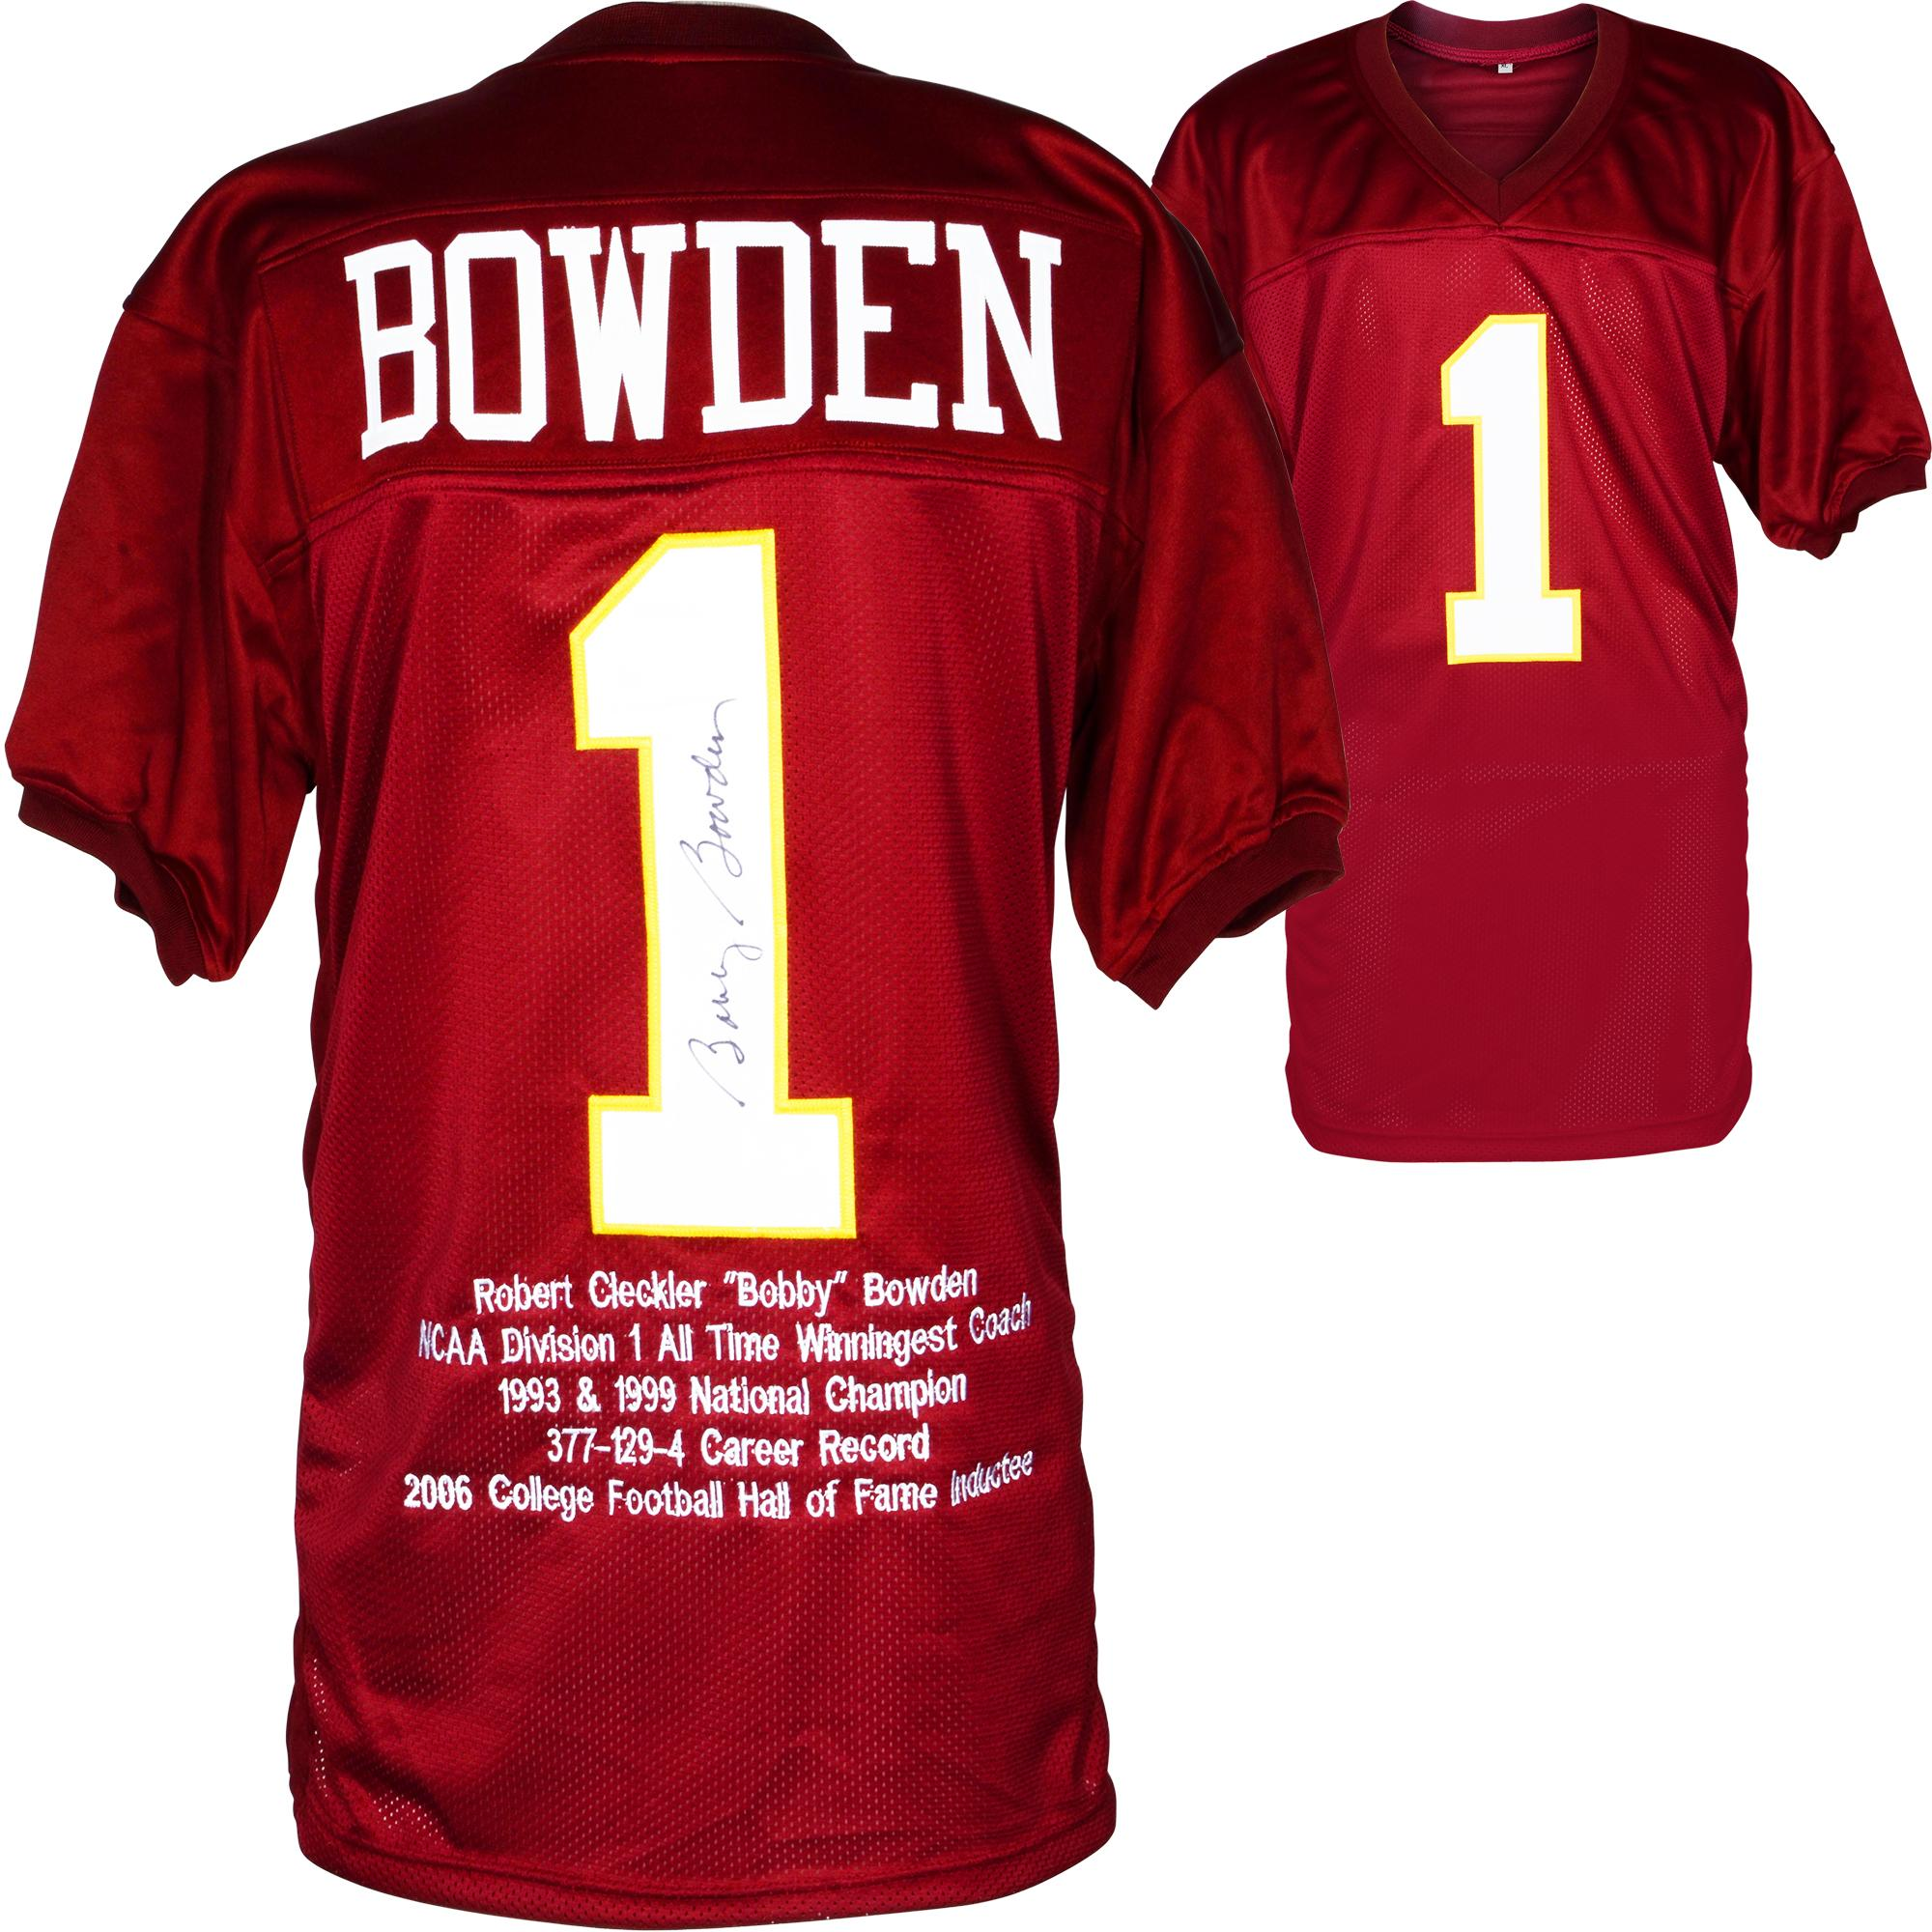 Bobby Bowden Florida State Seminoles Autographed Jersey